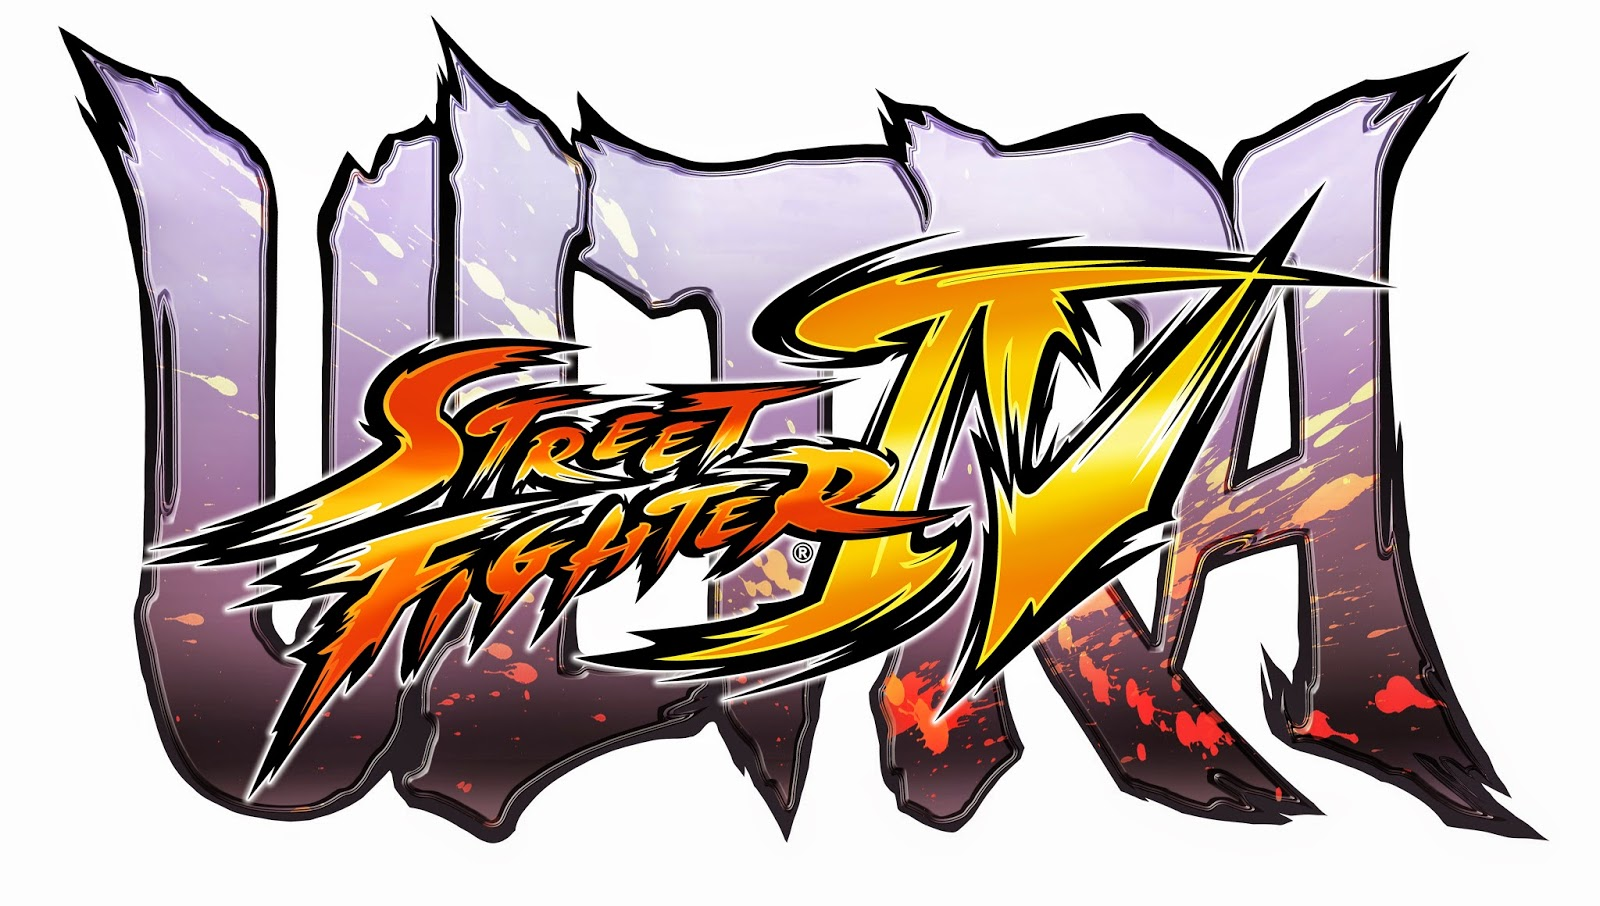 HD poster Ultra Street Fighter 4 desktop wallpaper